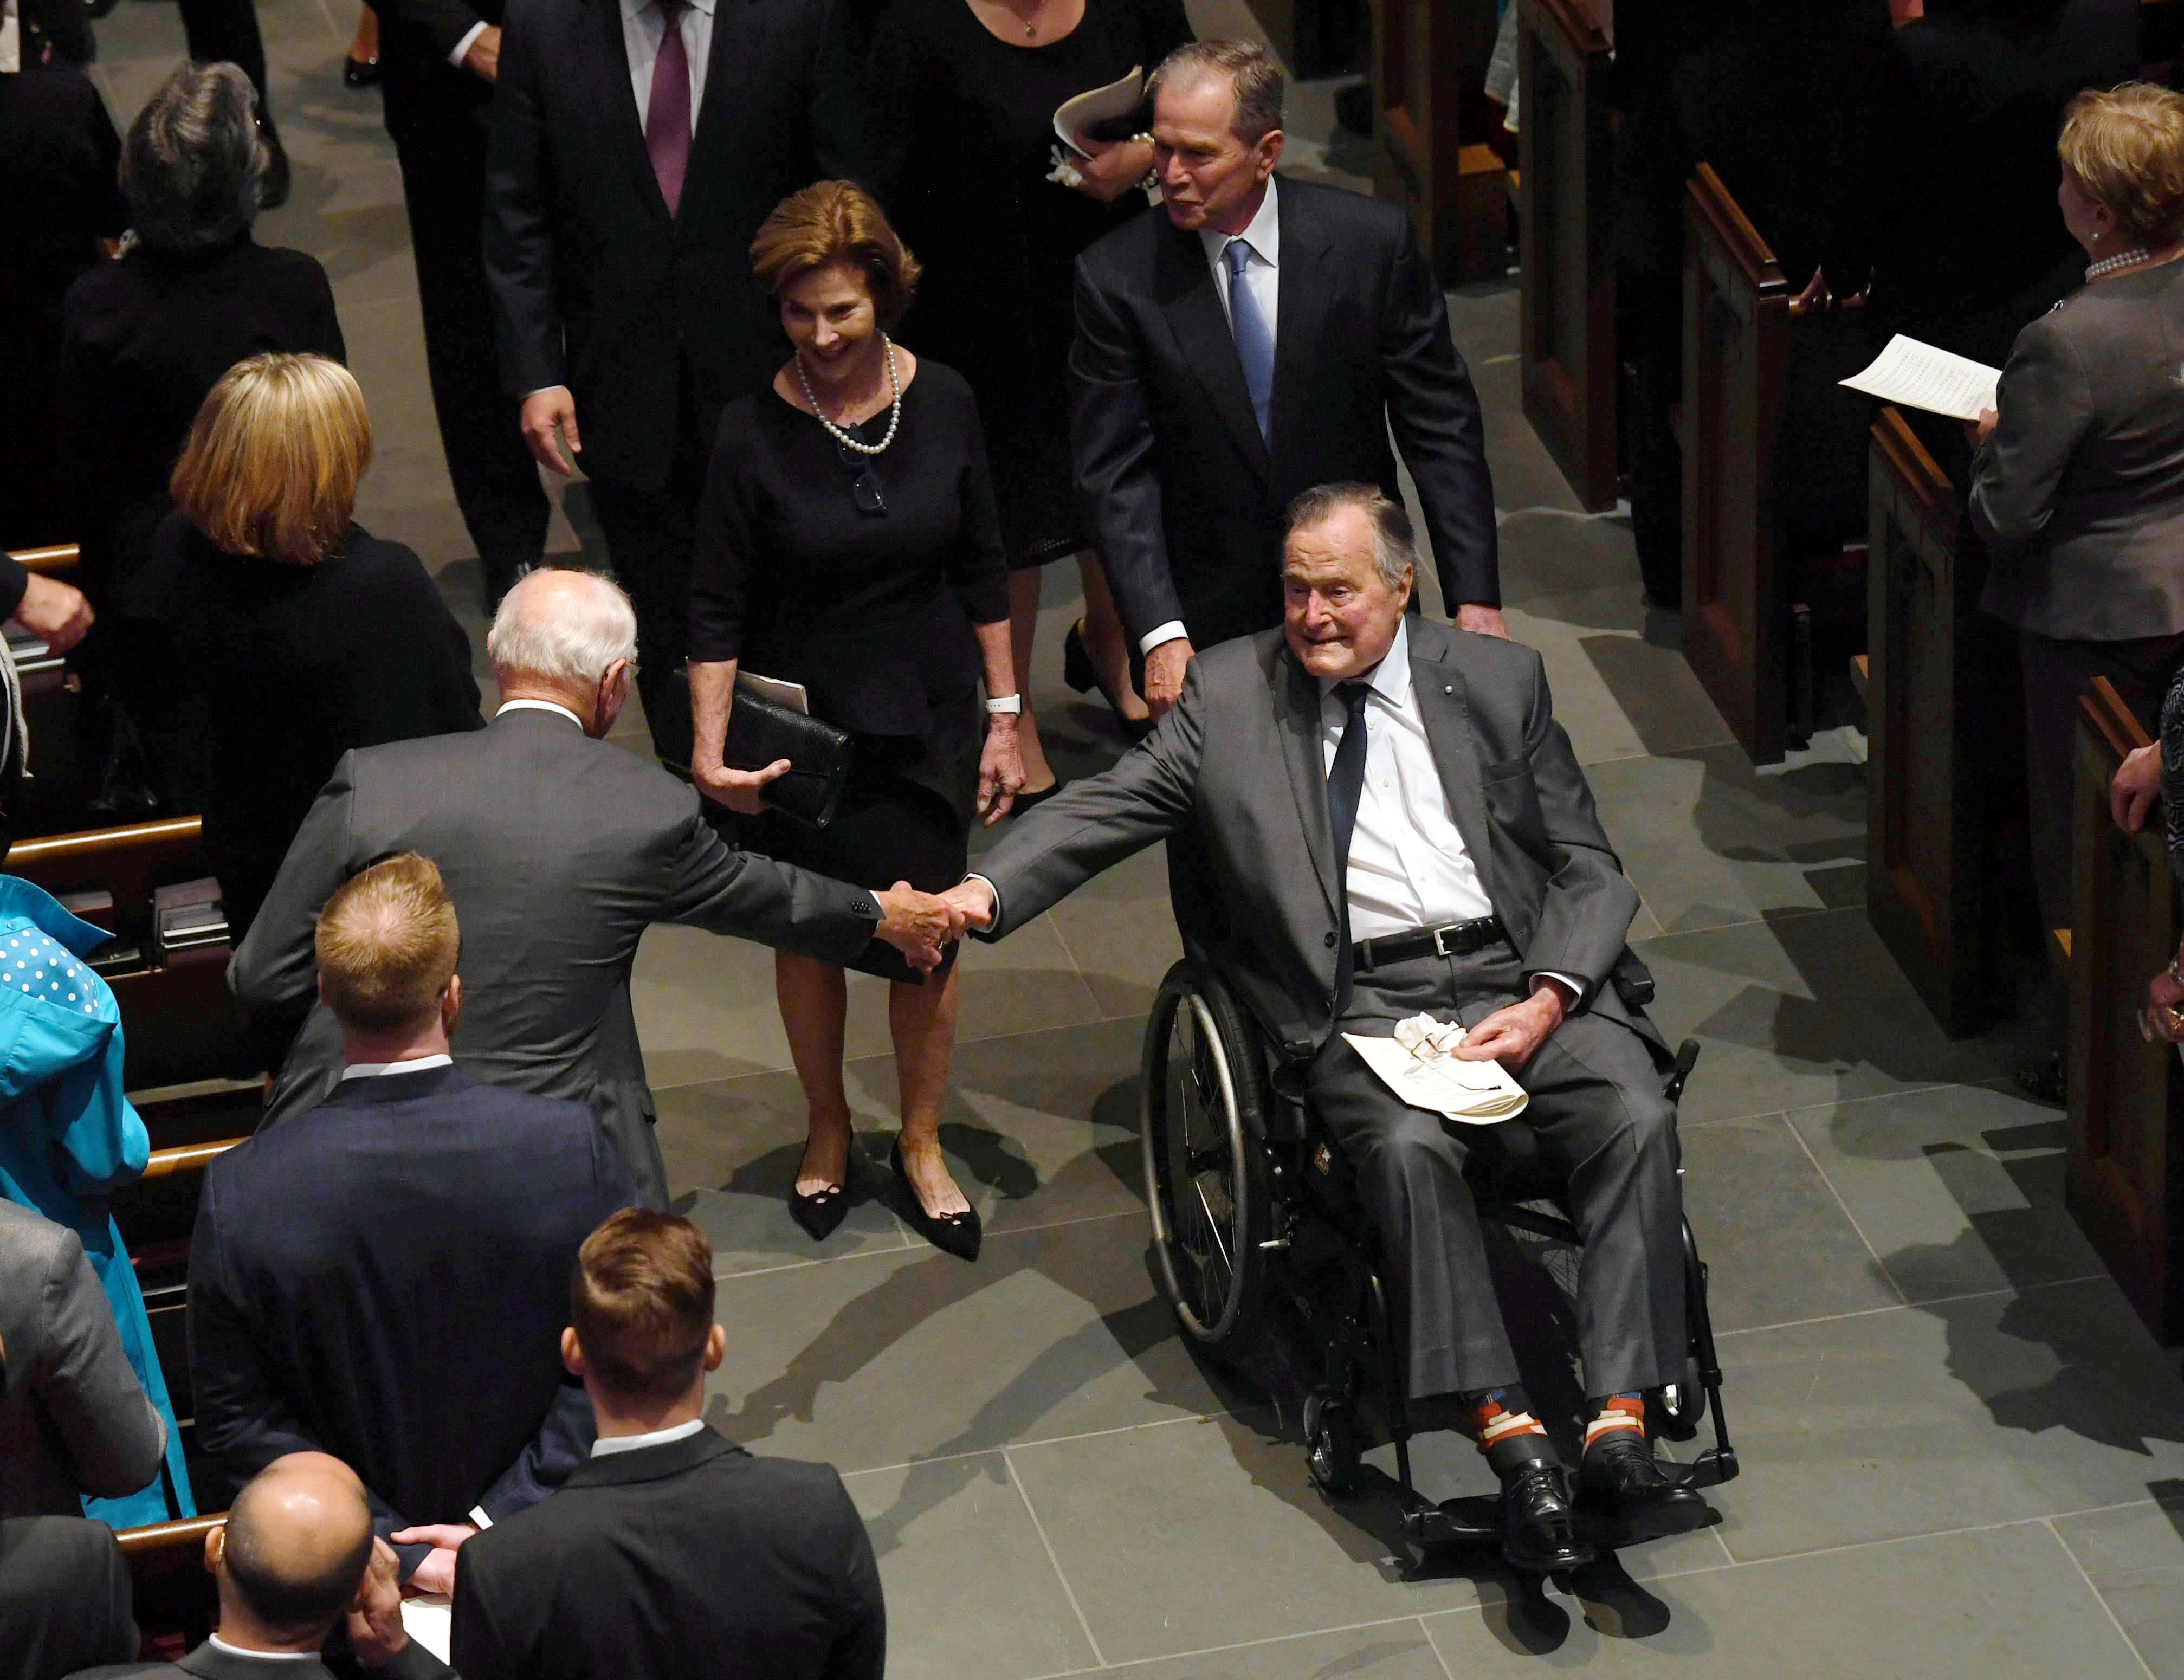 Former President George H.W. Bush is greeted as he exits the funeral services of his wife Barbara Bush, followed by his daughter-in-law former First Lady Laura Bush and son, former President George W. Bush at St. Martin's Episcopal Church in Houston, Texas, U.S., April 21, 2018.  Jack Gruber/Pool via Reuters